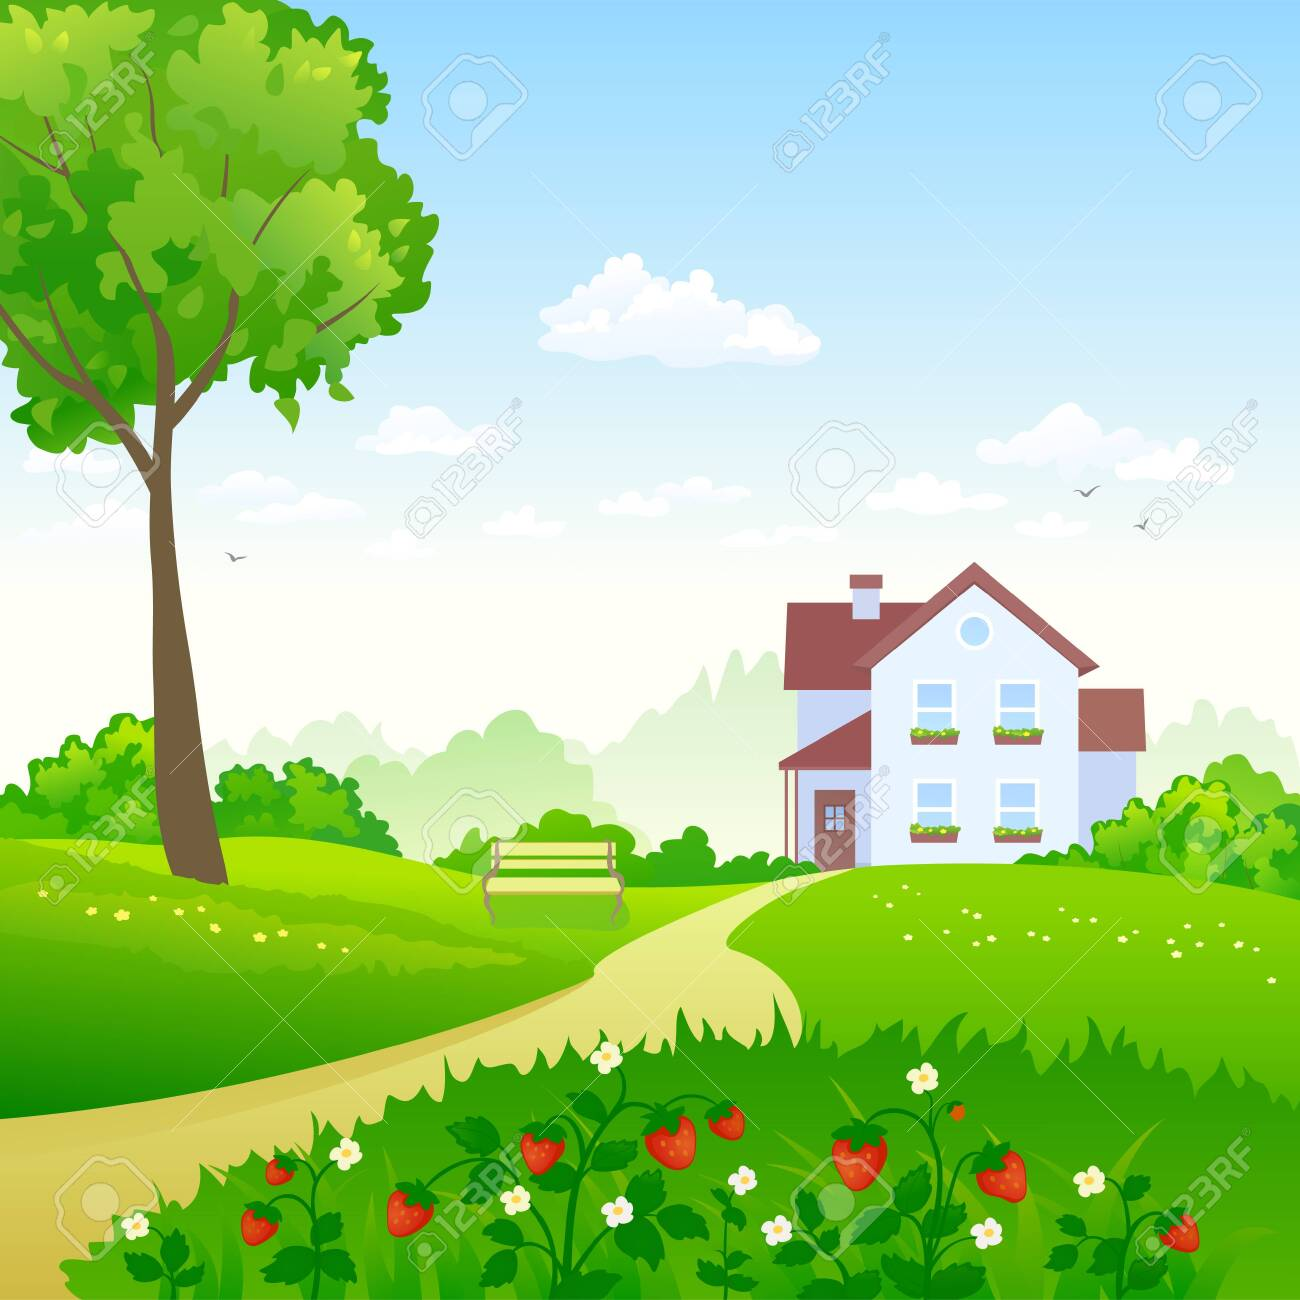 Vector illustration of a green garden with a strawberry meadow - 149977871